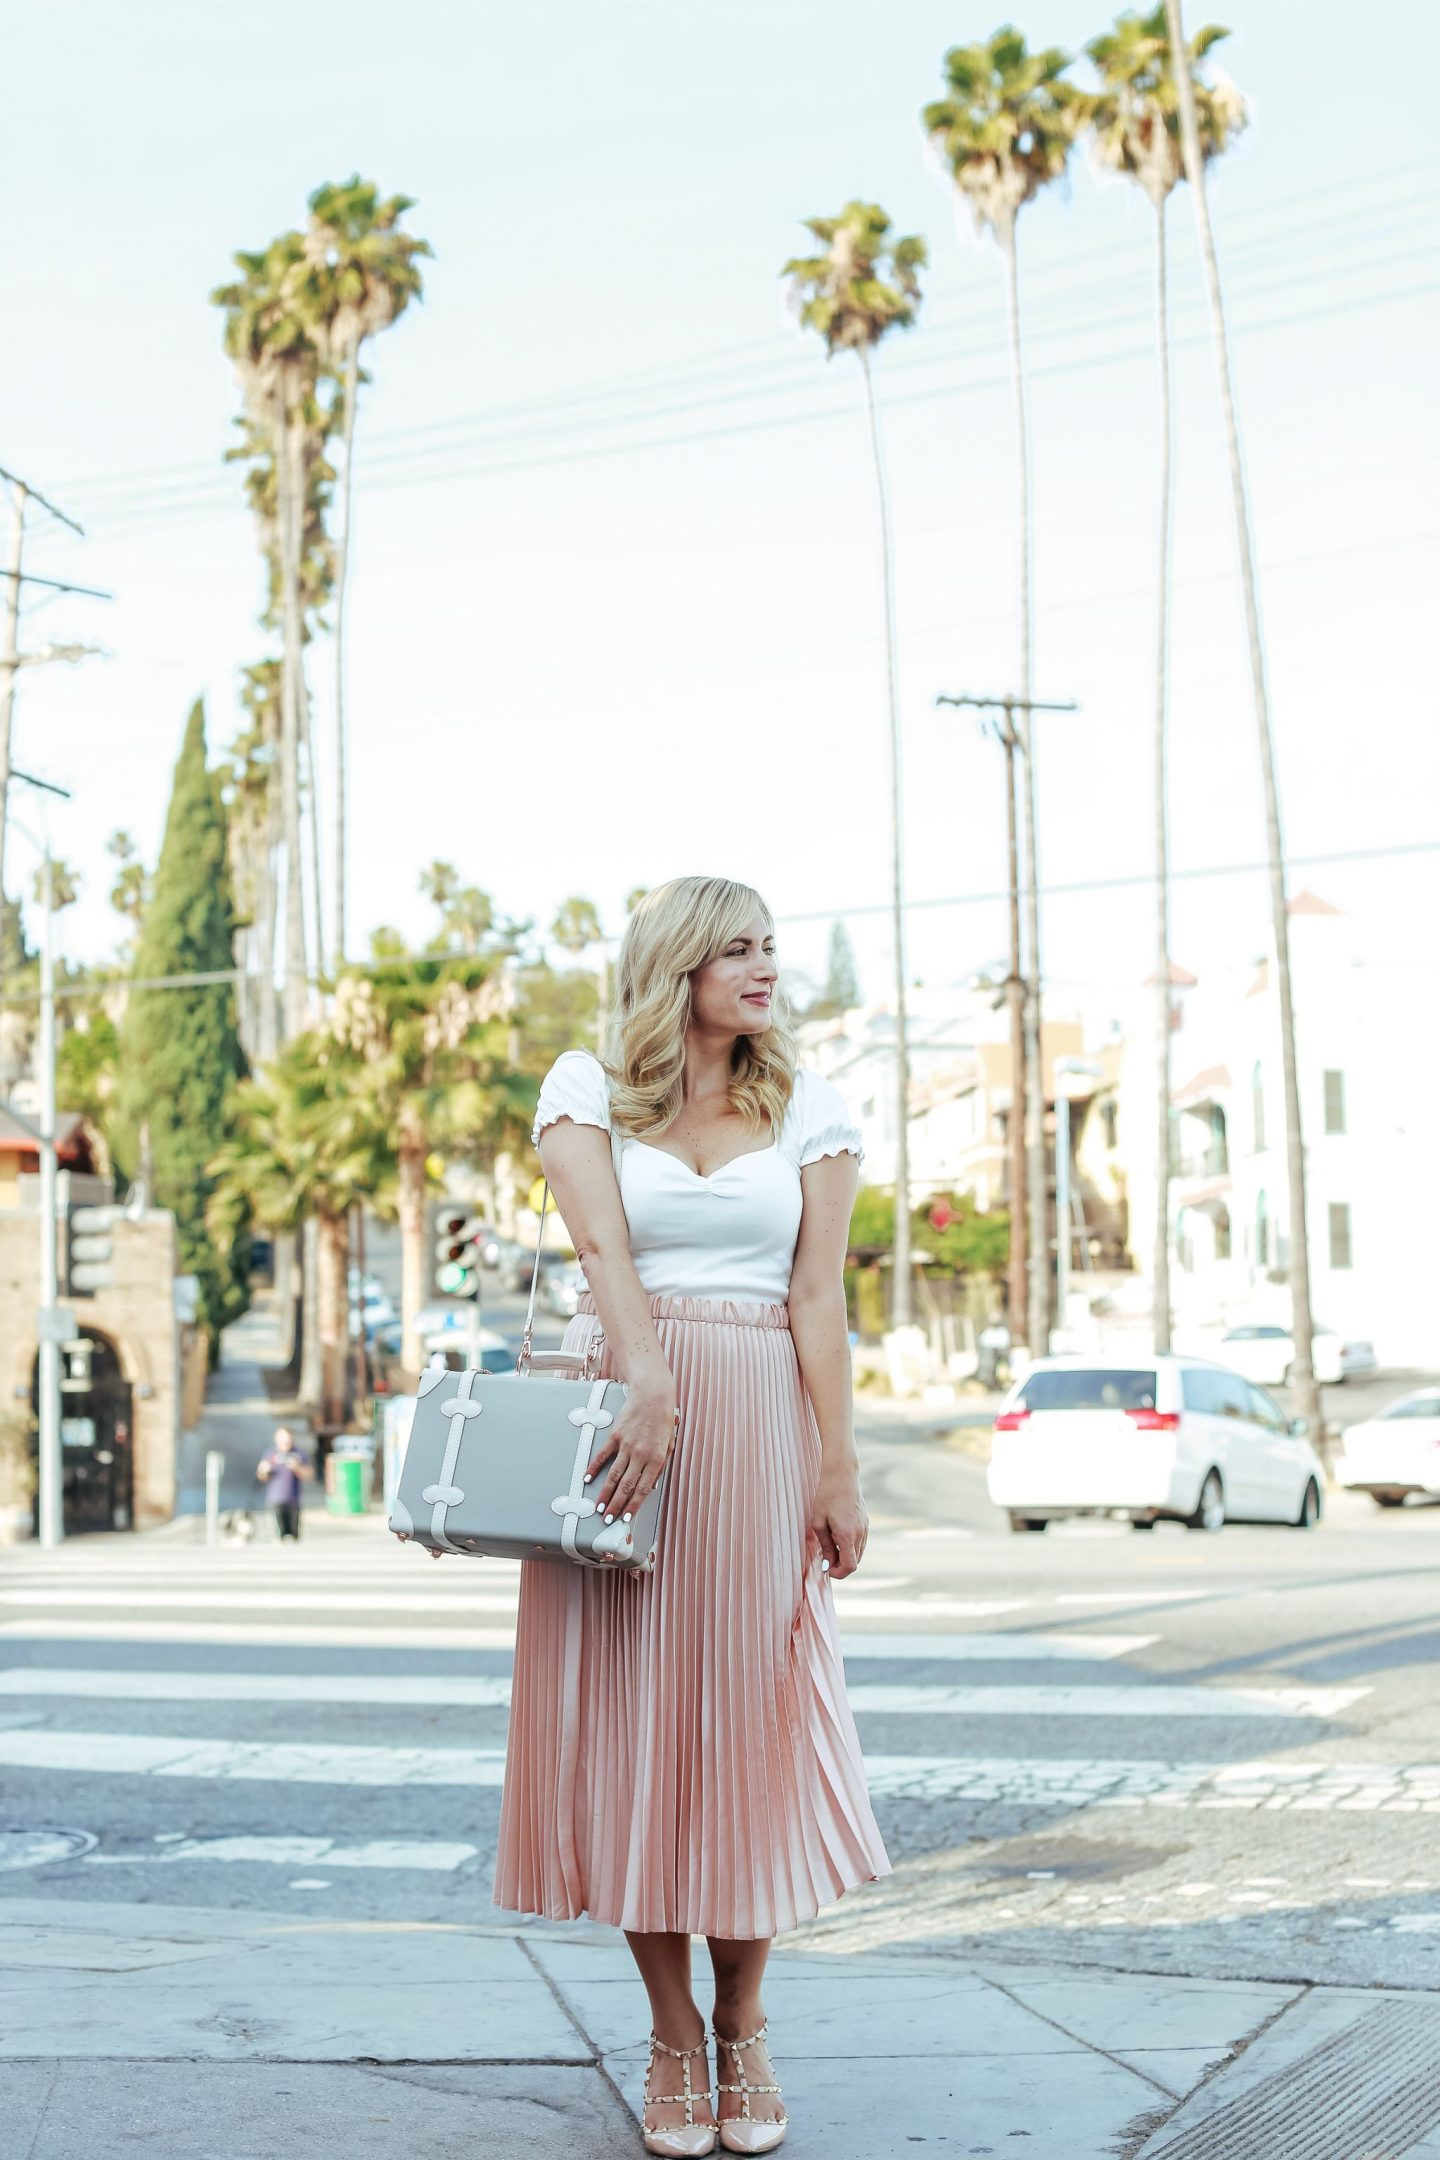 pink pleated midi skirt with vintage inspired luggage and white crop top